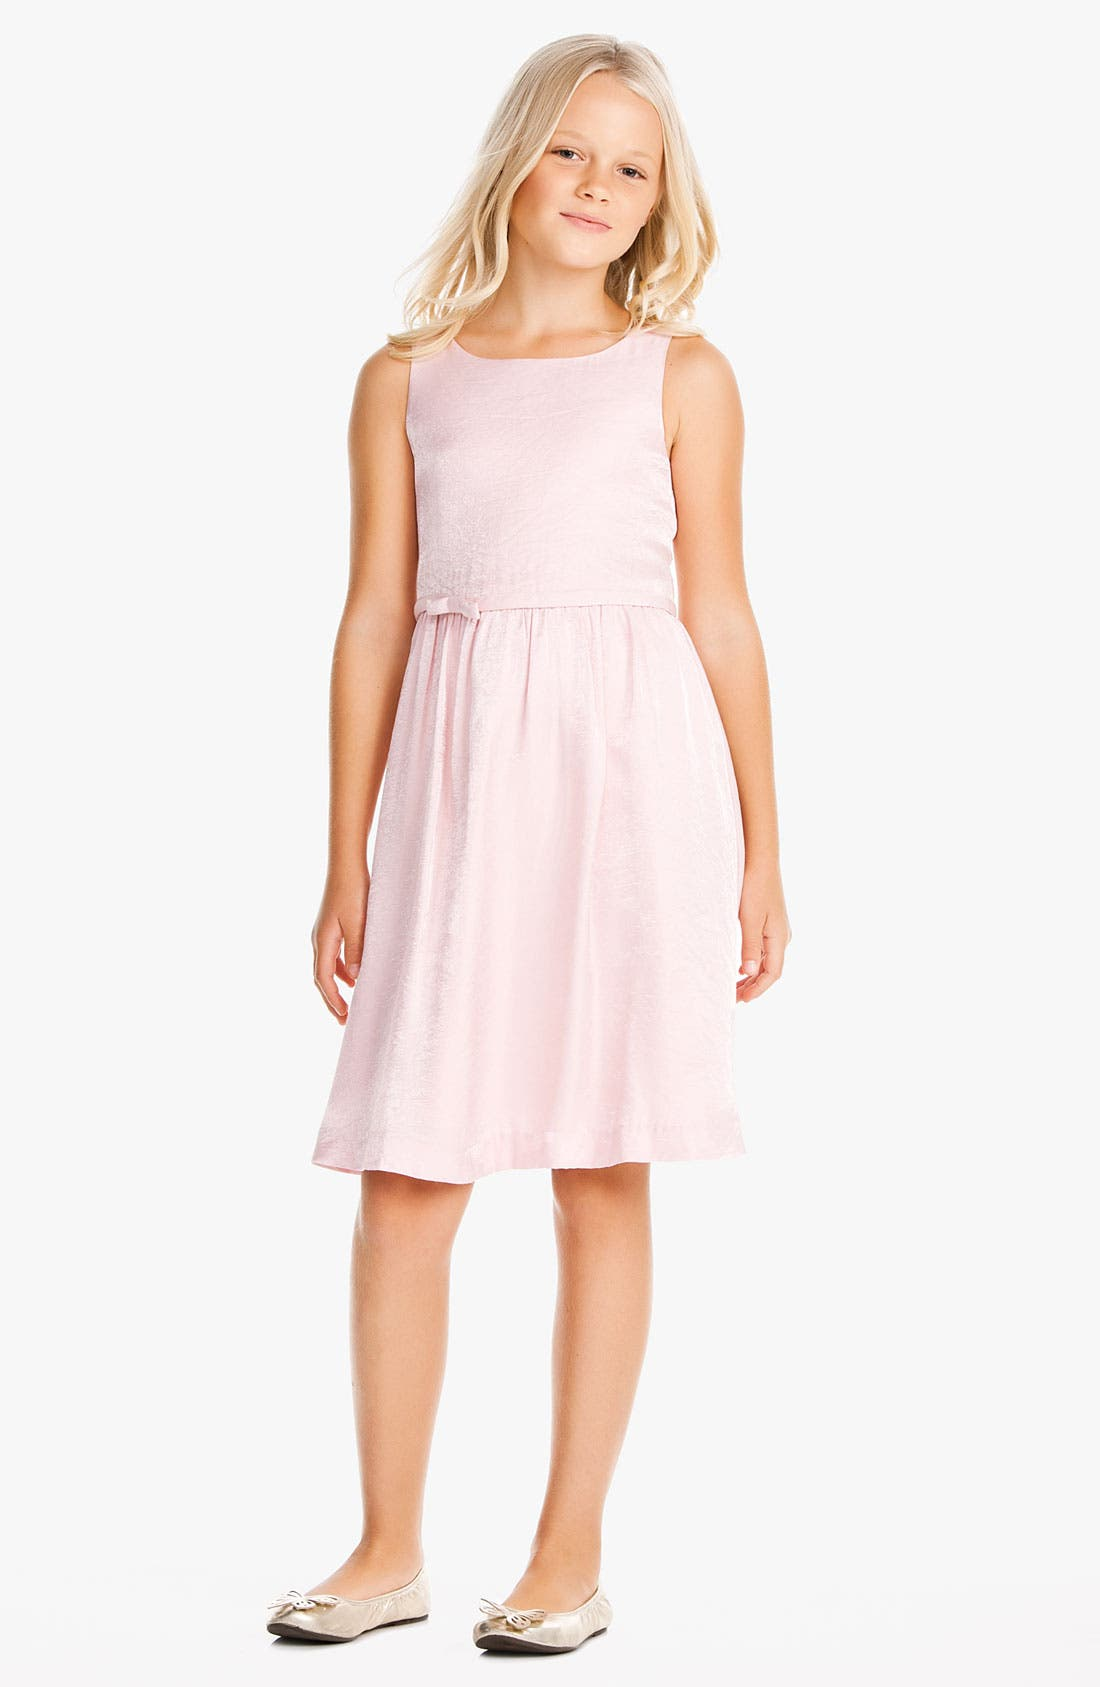 Alternate Image 1 Selected - BLUSH by Us Angels 'Milly' Dress (Big Girls)